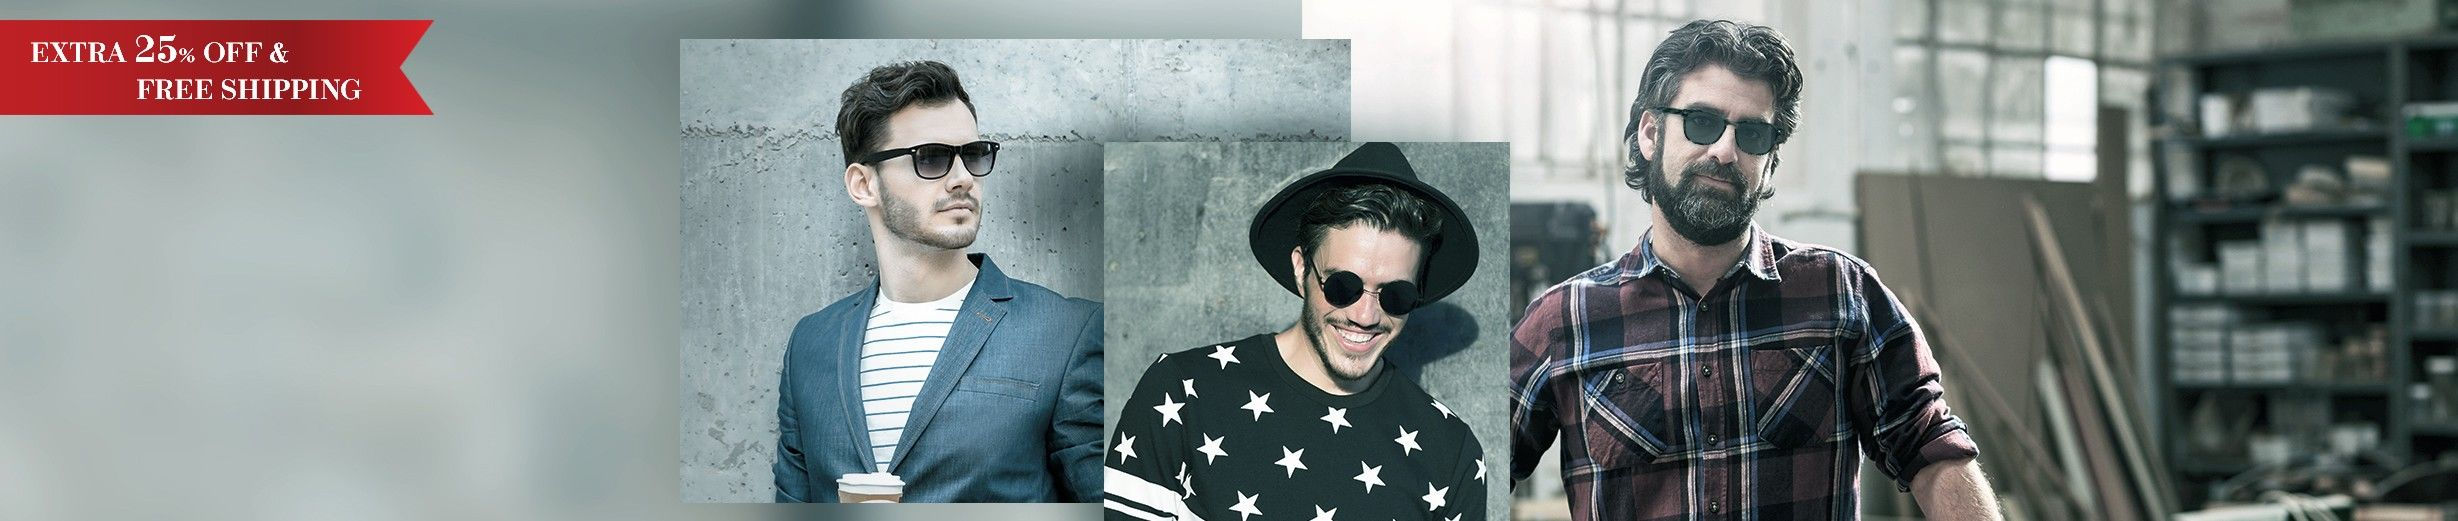 Glassesgallery - Men sunglasses banner